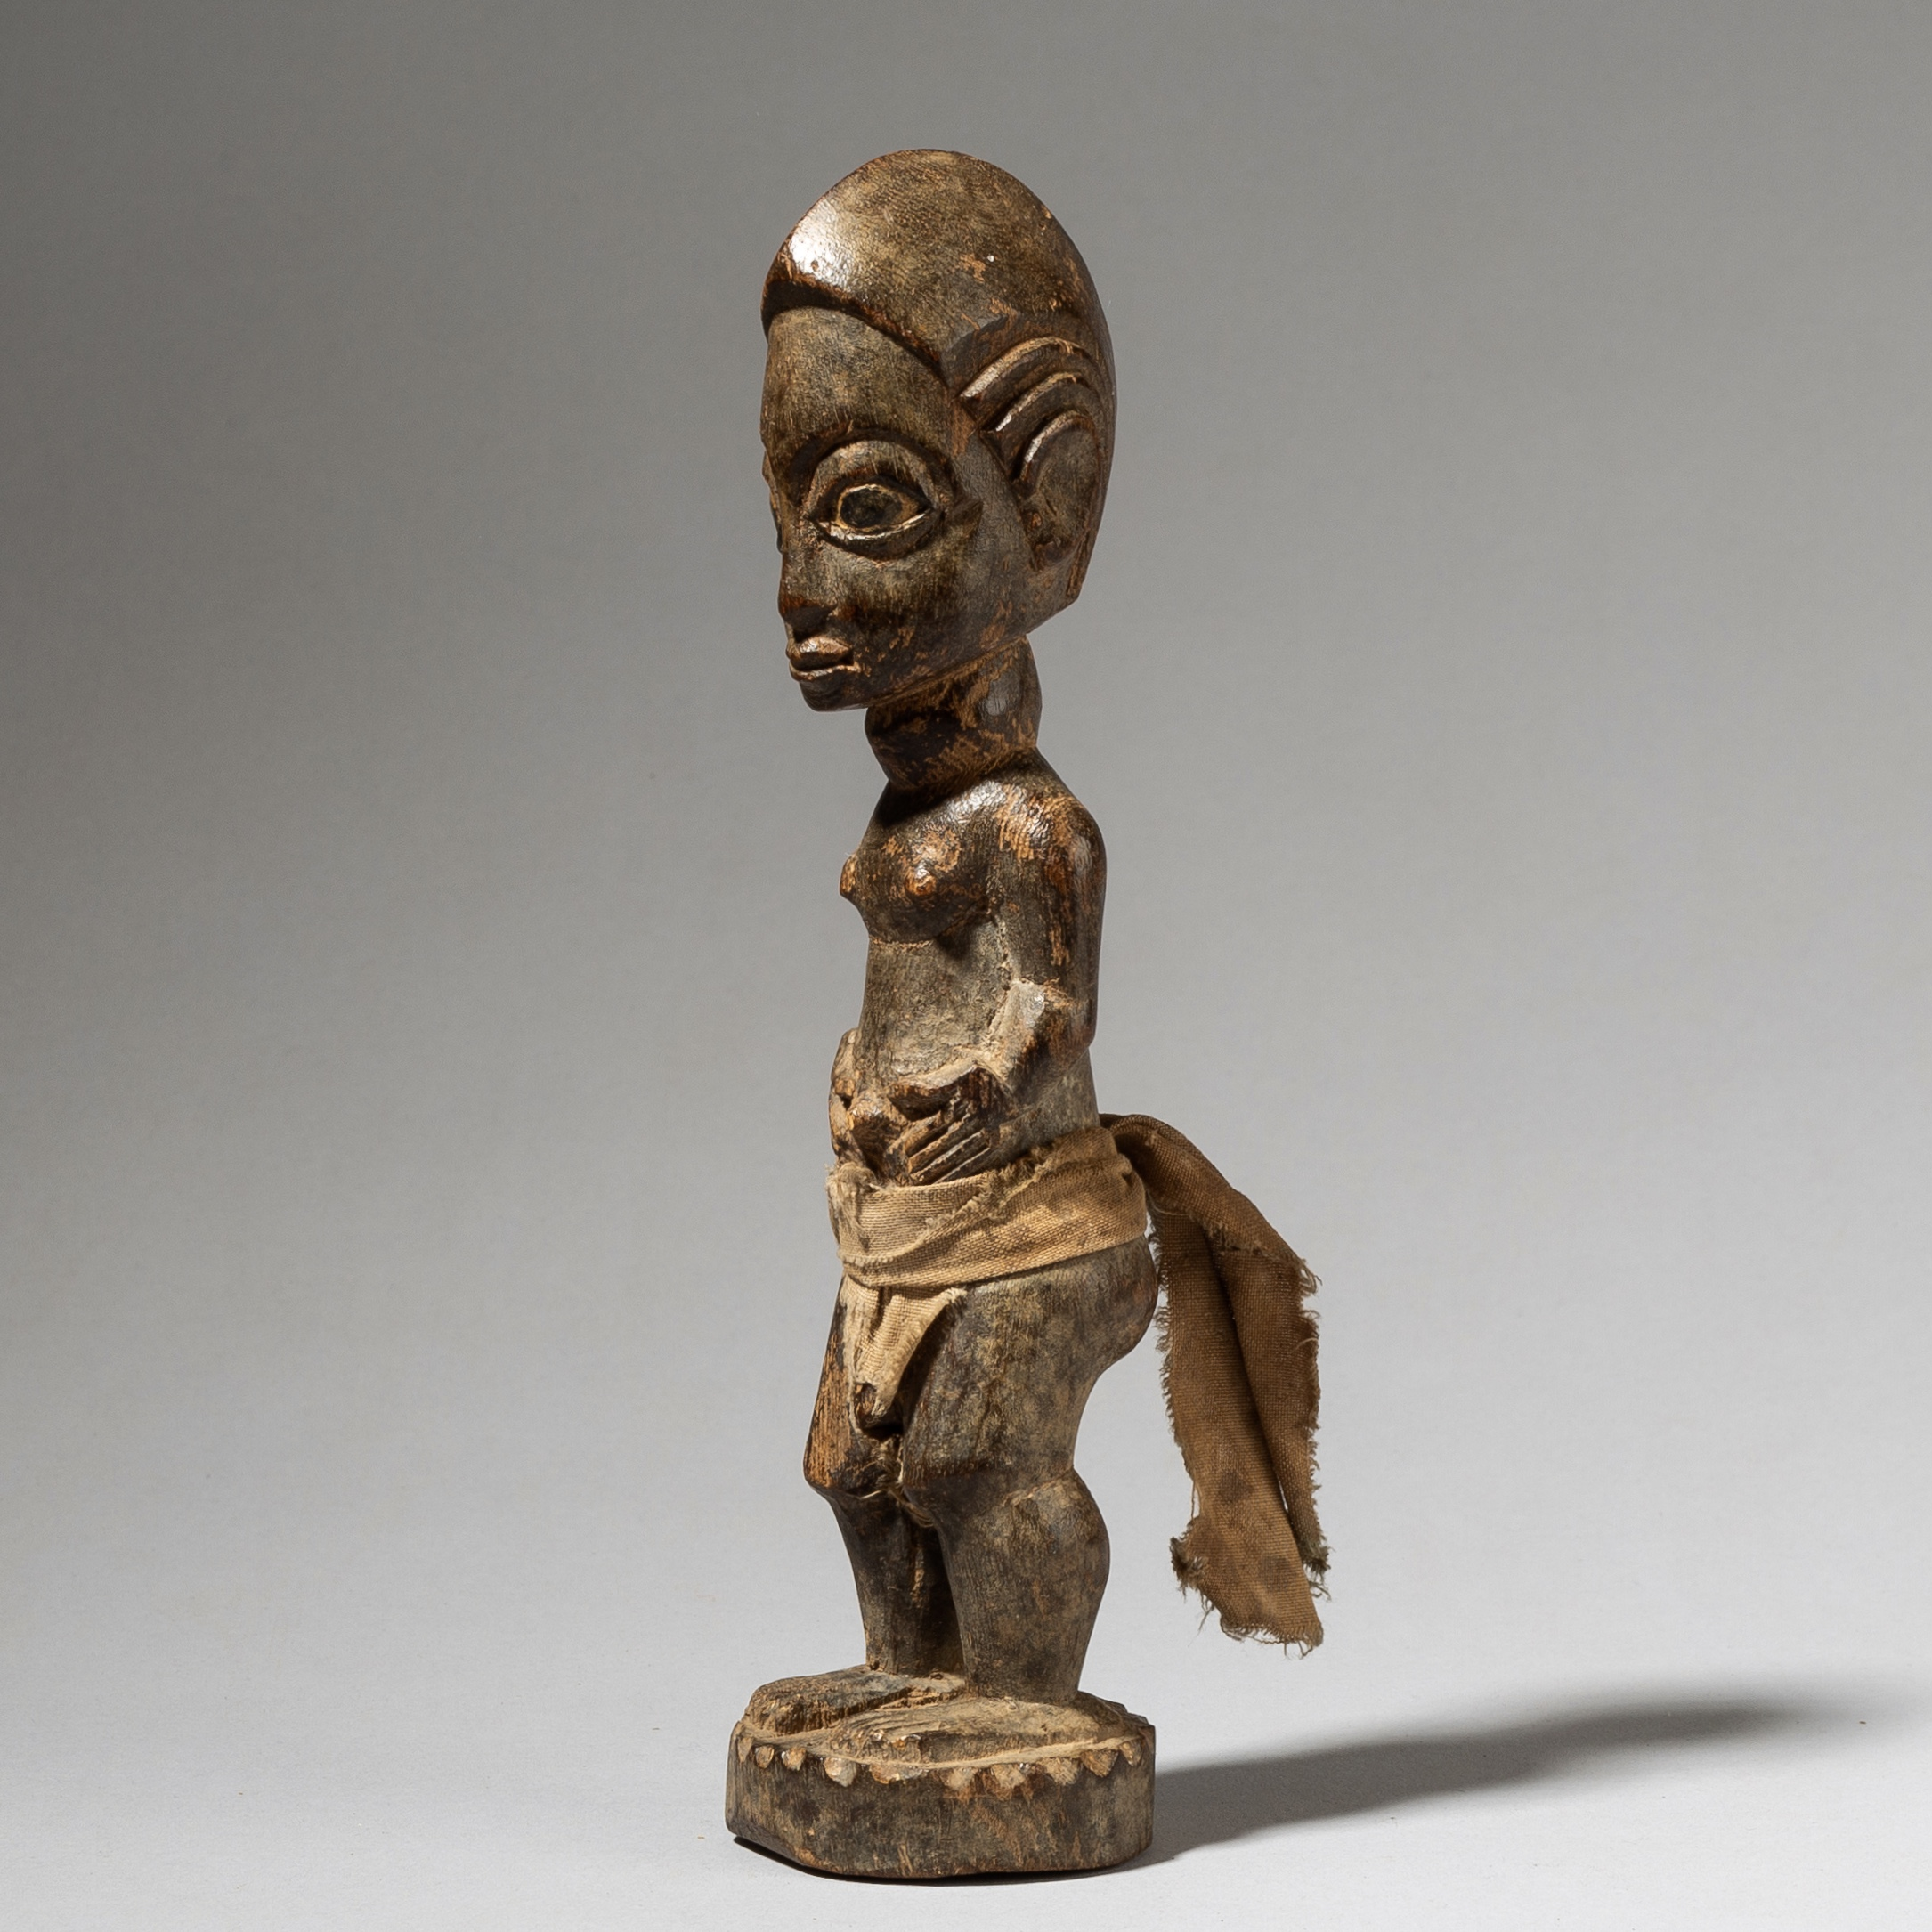 A HANDSOME OTHER WORLD PARTNER, BAULE TRIBE IVORY COAST W AFRICA ( No 4045)